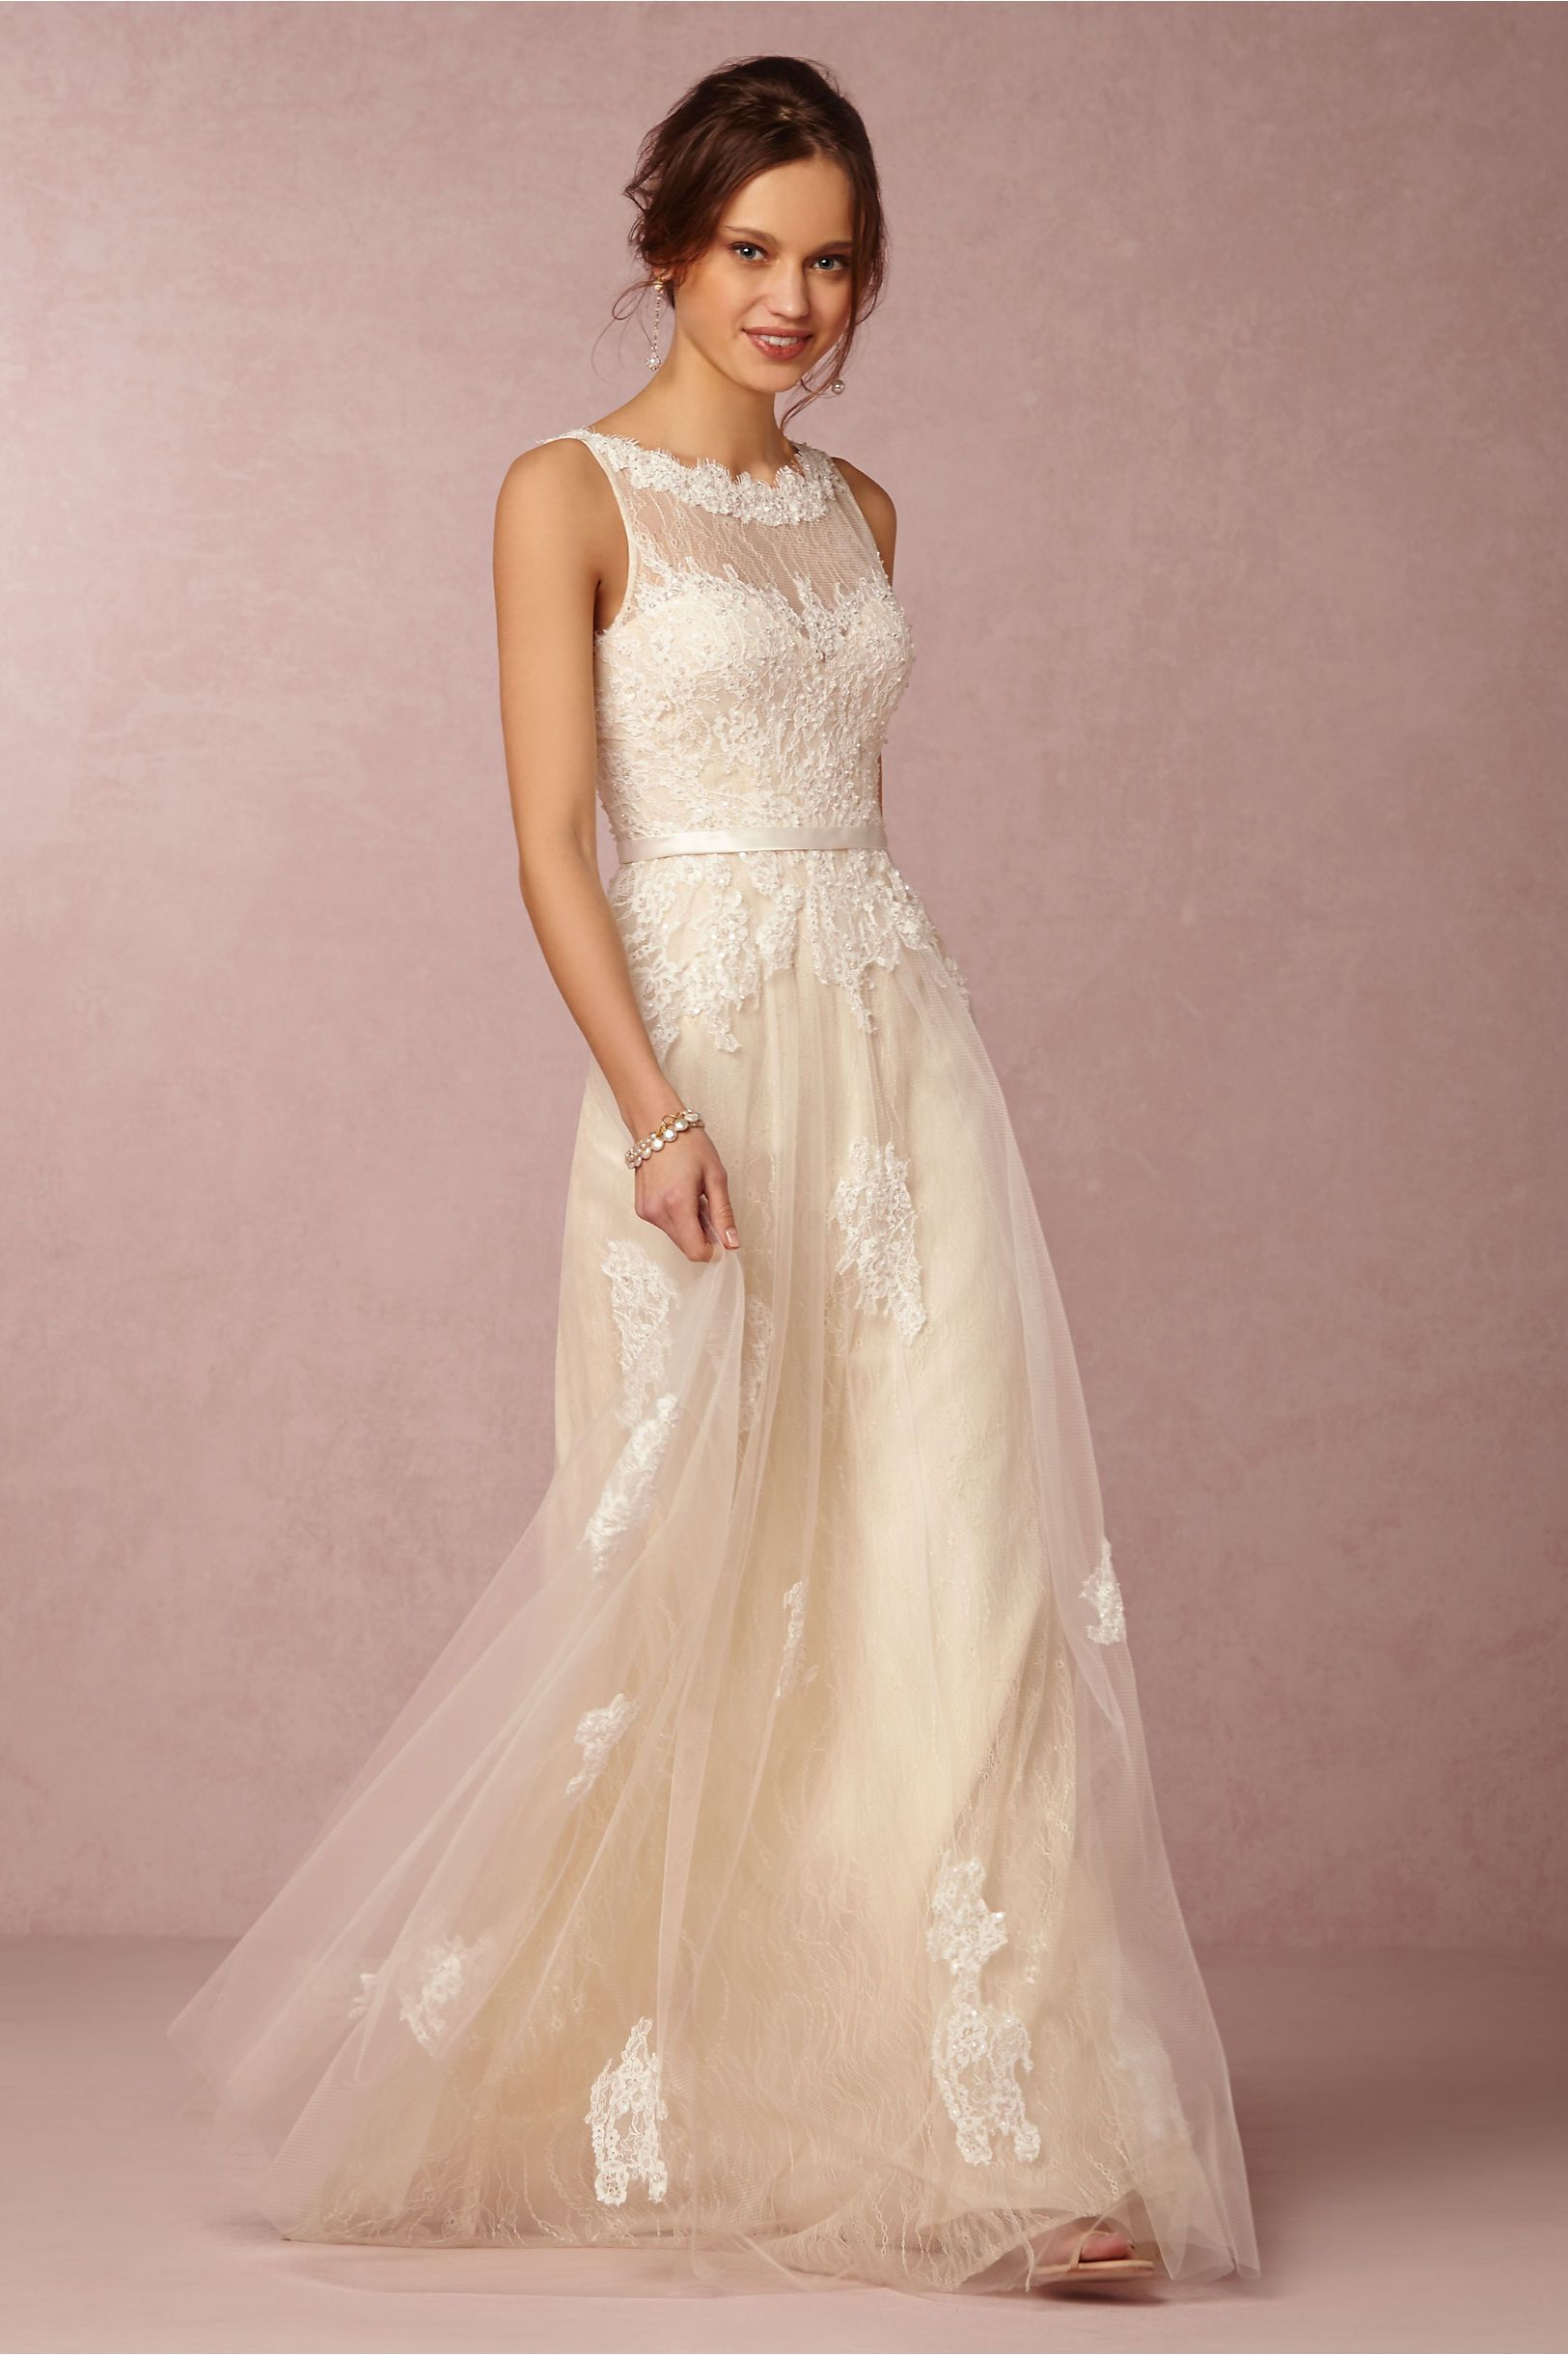 Georgia Gown in Bride Wedding Dresses at BHLDN | Wedding Inspiration ...